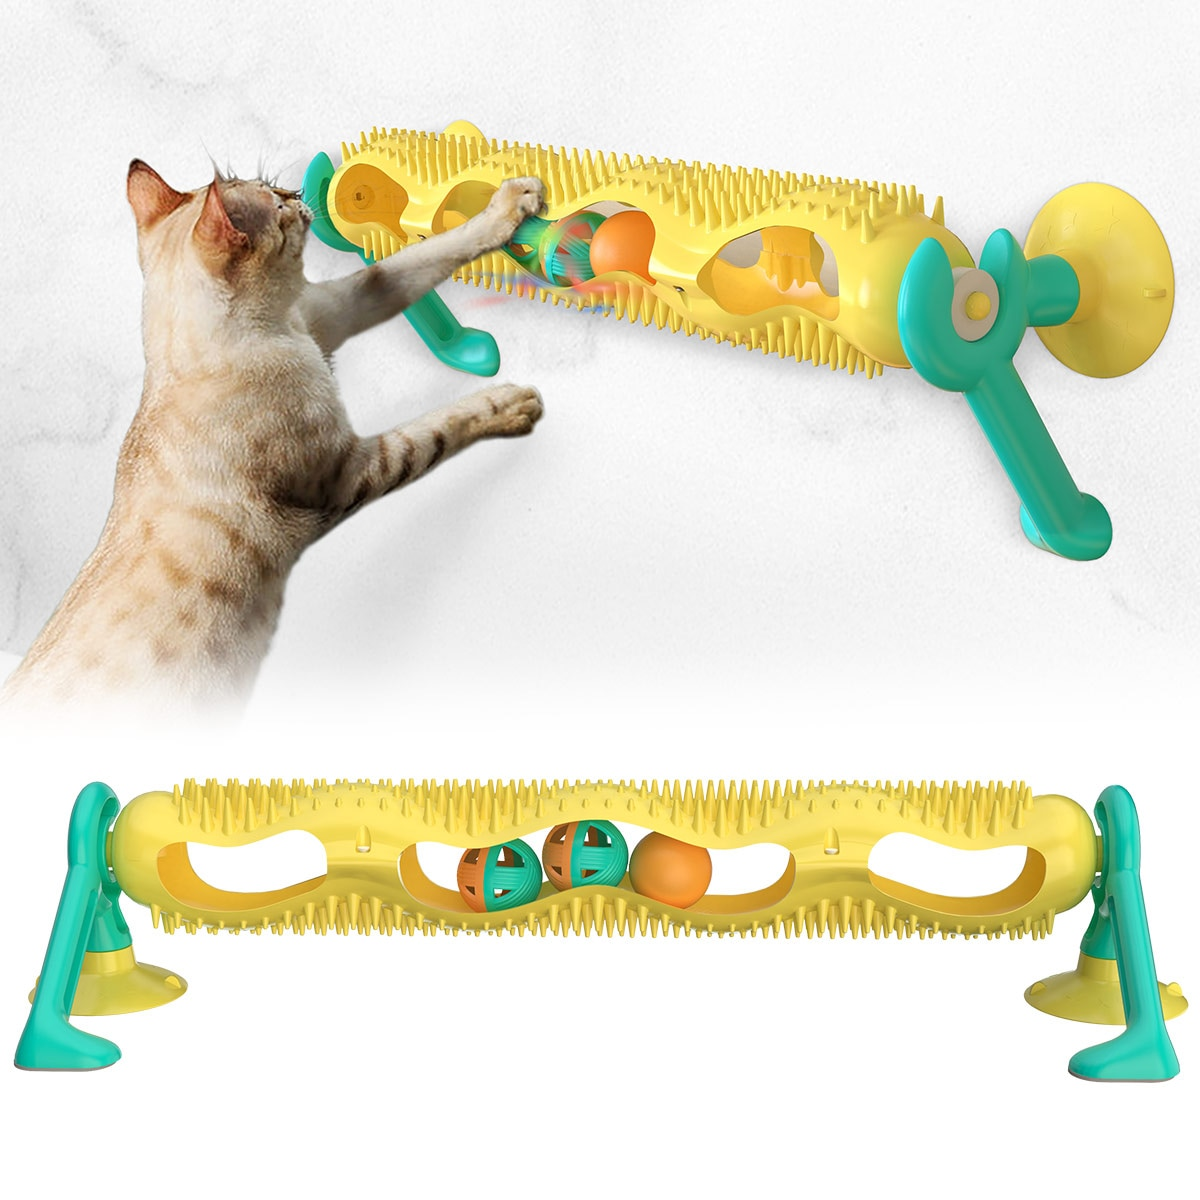 toy-interactive-pet-cat-toy-for-kitten-scratching-itching-training-education-with-tracking-ball-puzzle-toys-pet-products-supplie